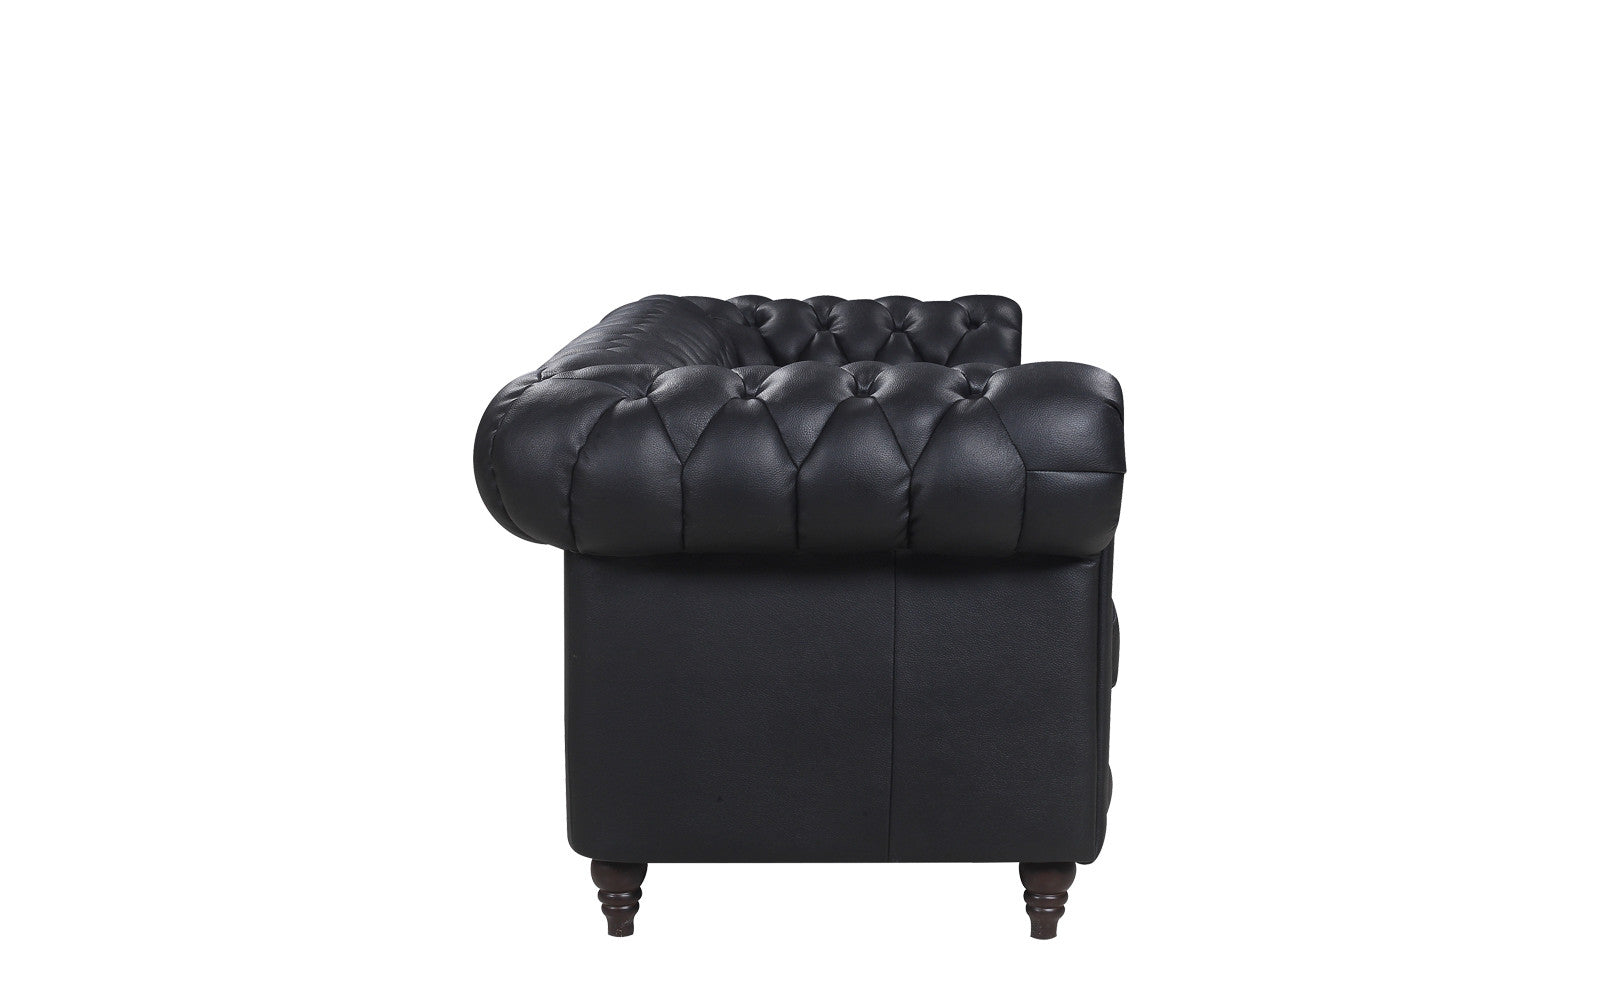 sofa grey classic earl chair chesterfield style modern img contemporary velour kardiel